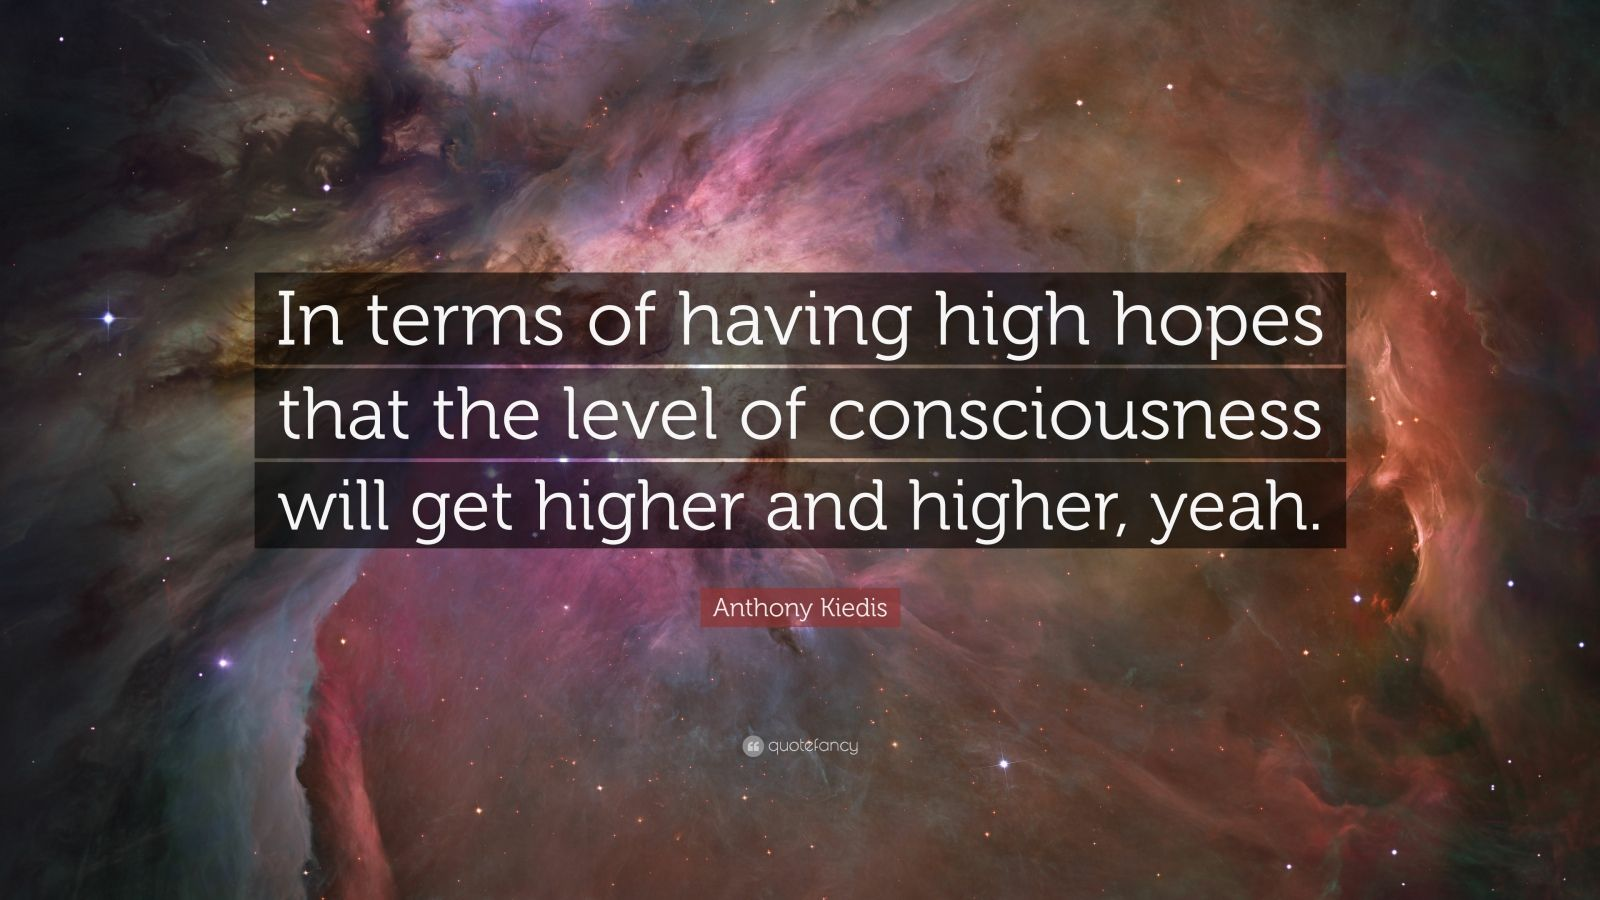 Anthony Kiedis Quote In Terms Of Having High Hopes That The Level